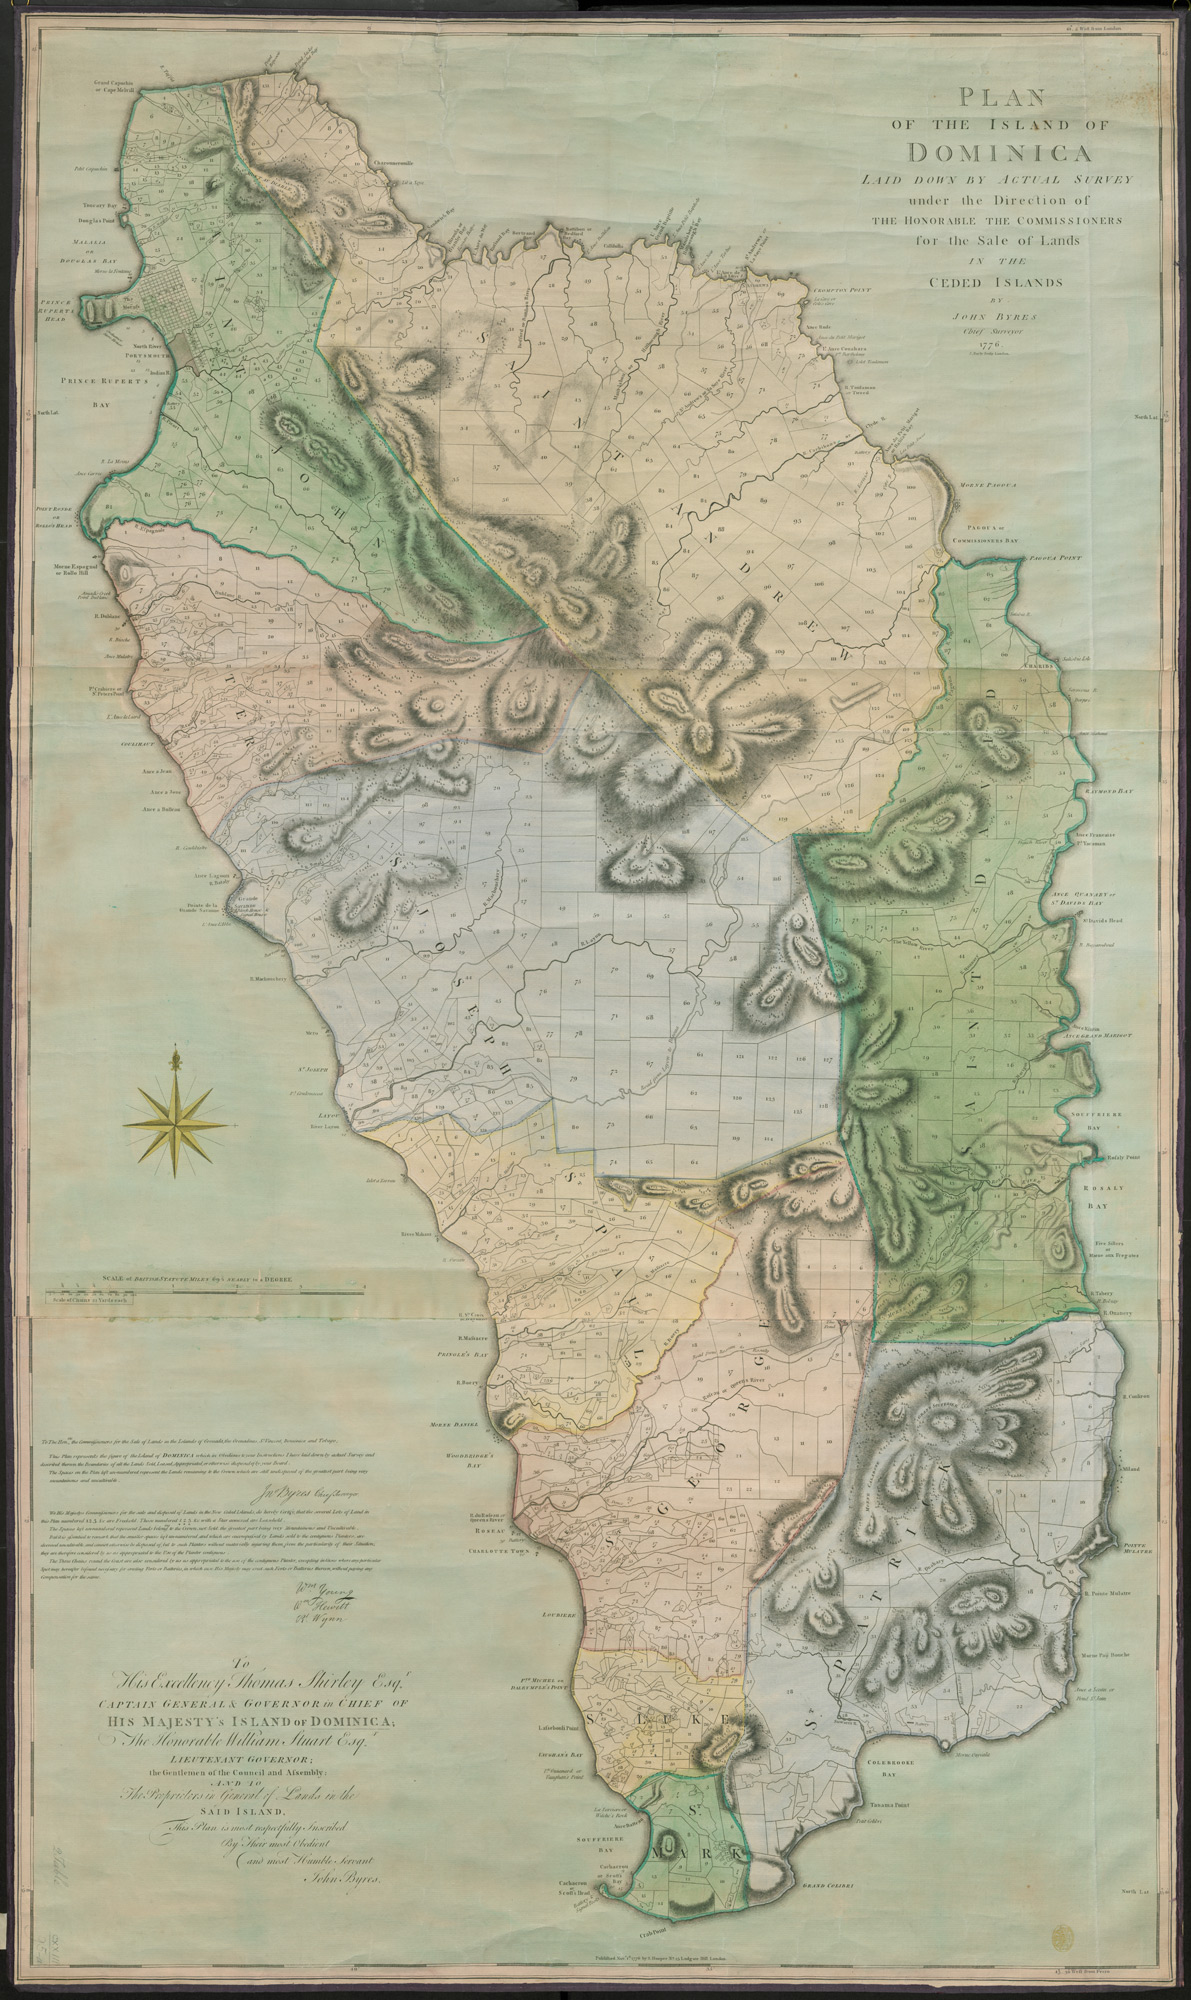 Plan of the island of Dominica, 1776 - The British Liry Map Direction Uk on mapquest directions, get directions, driving directions, scale directions, compass directions, travel directions, traffic directions, giving directions,